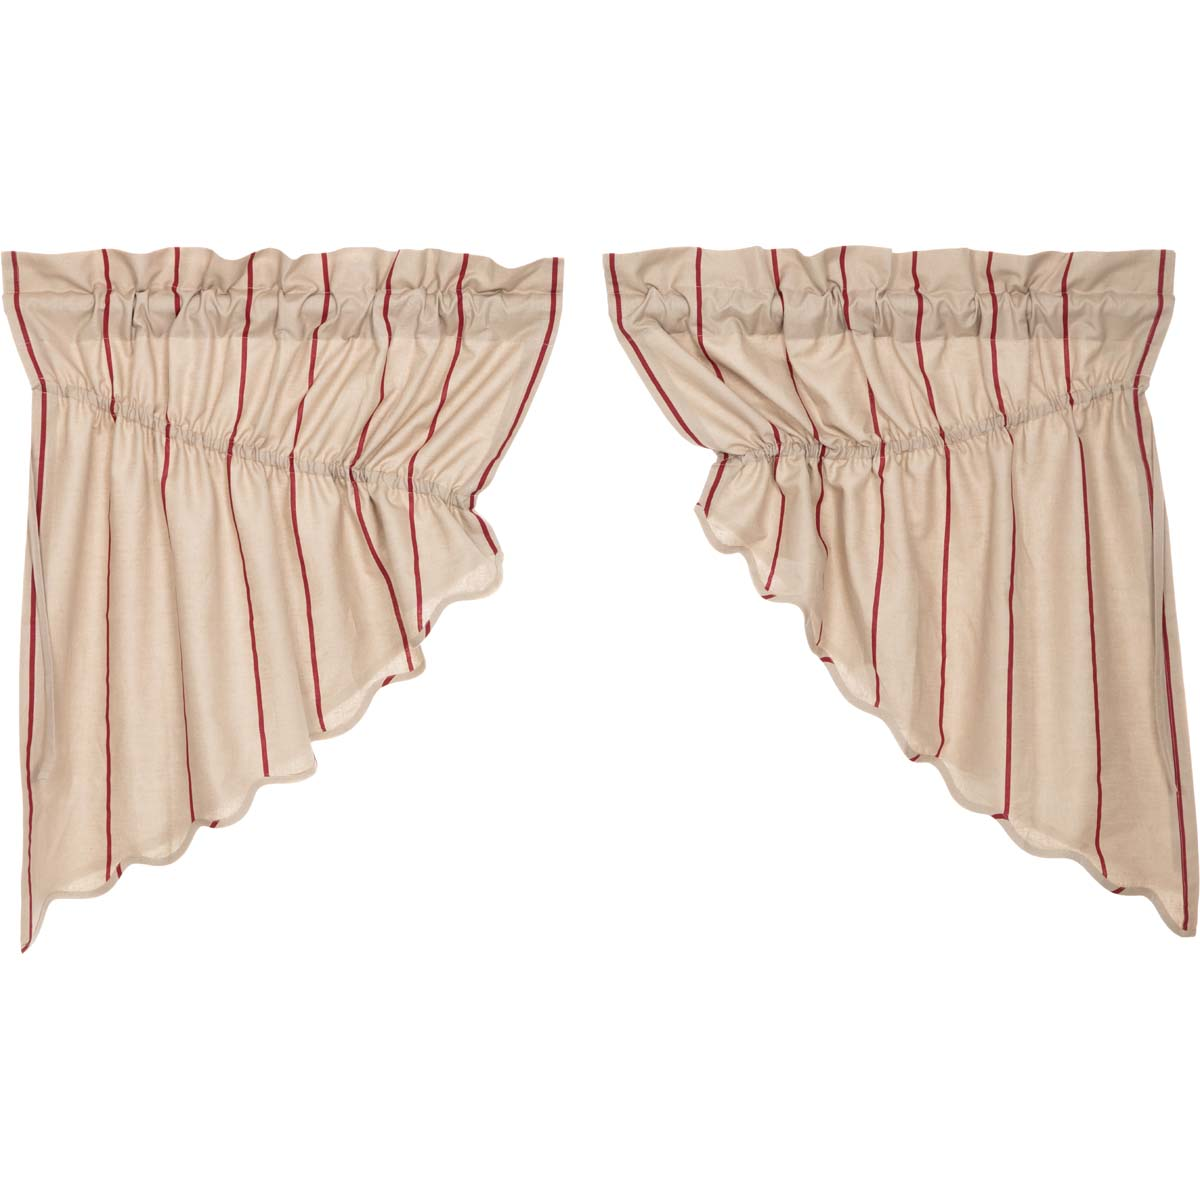 Charlotte Rouge Scalloped Prairie Swag Set of 2 36x36x18